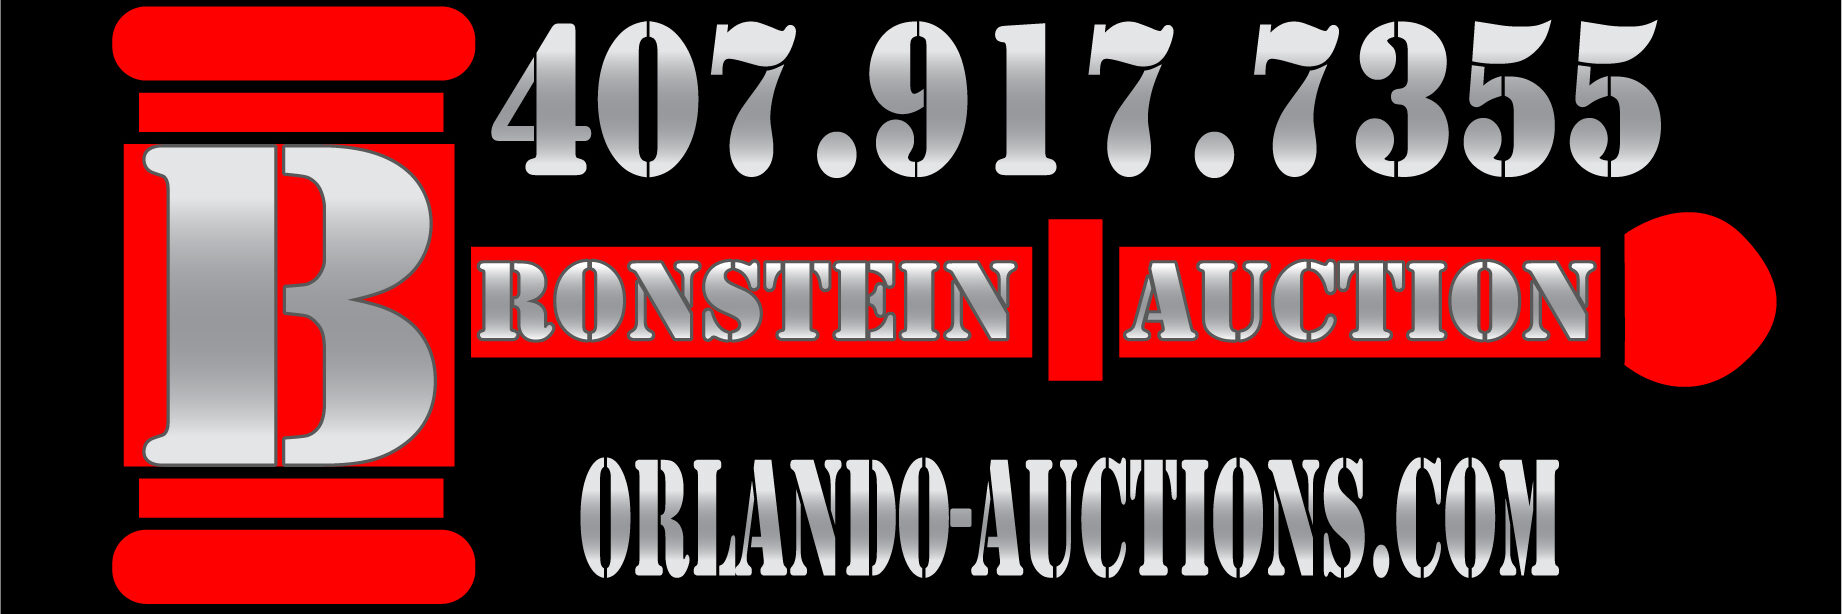 Bronstein Auction Co